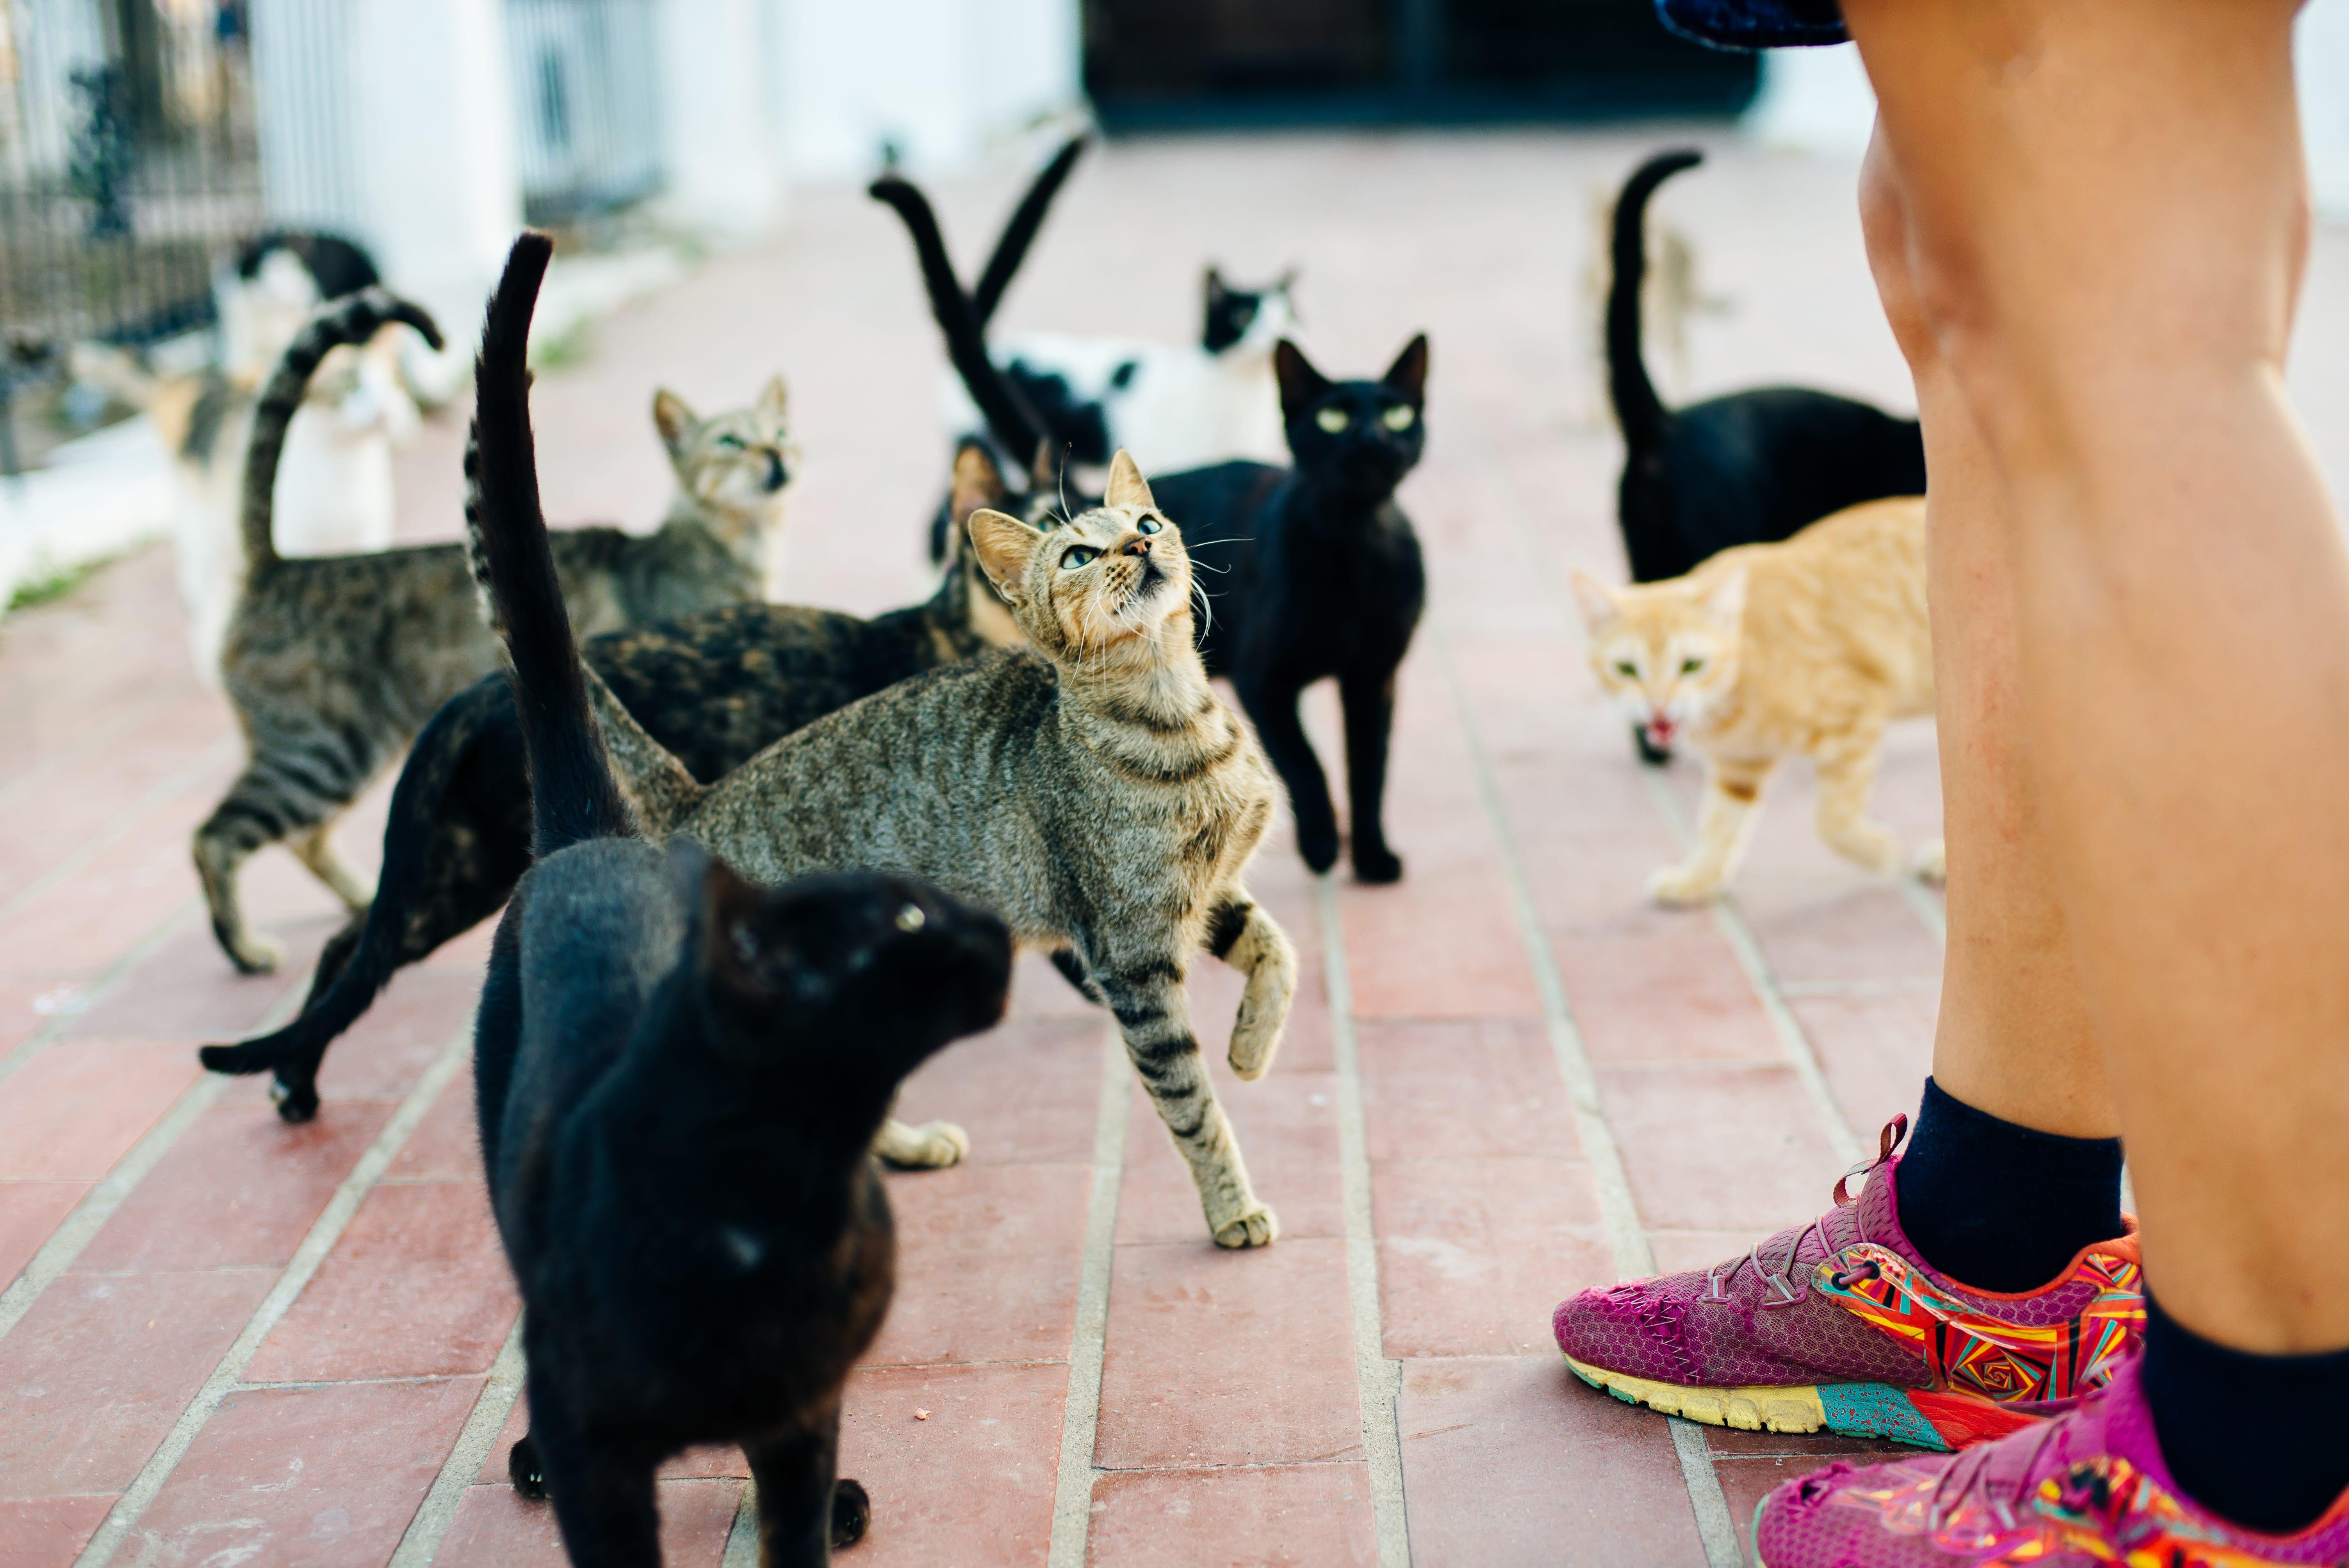 United States elderly lady given jail time for feeding cats